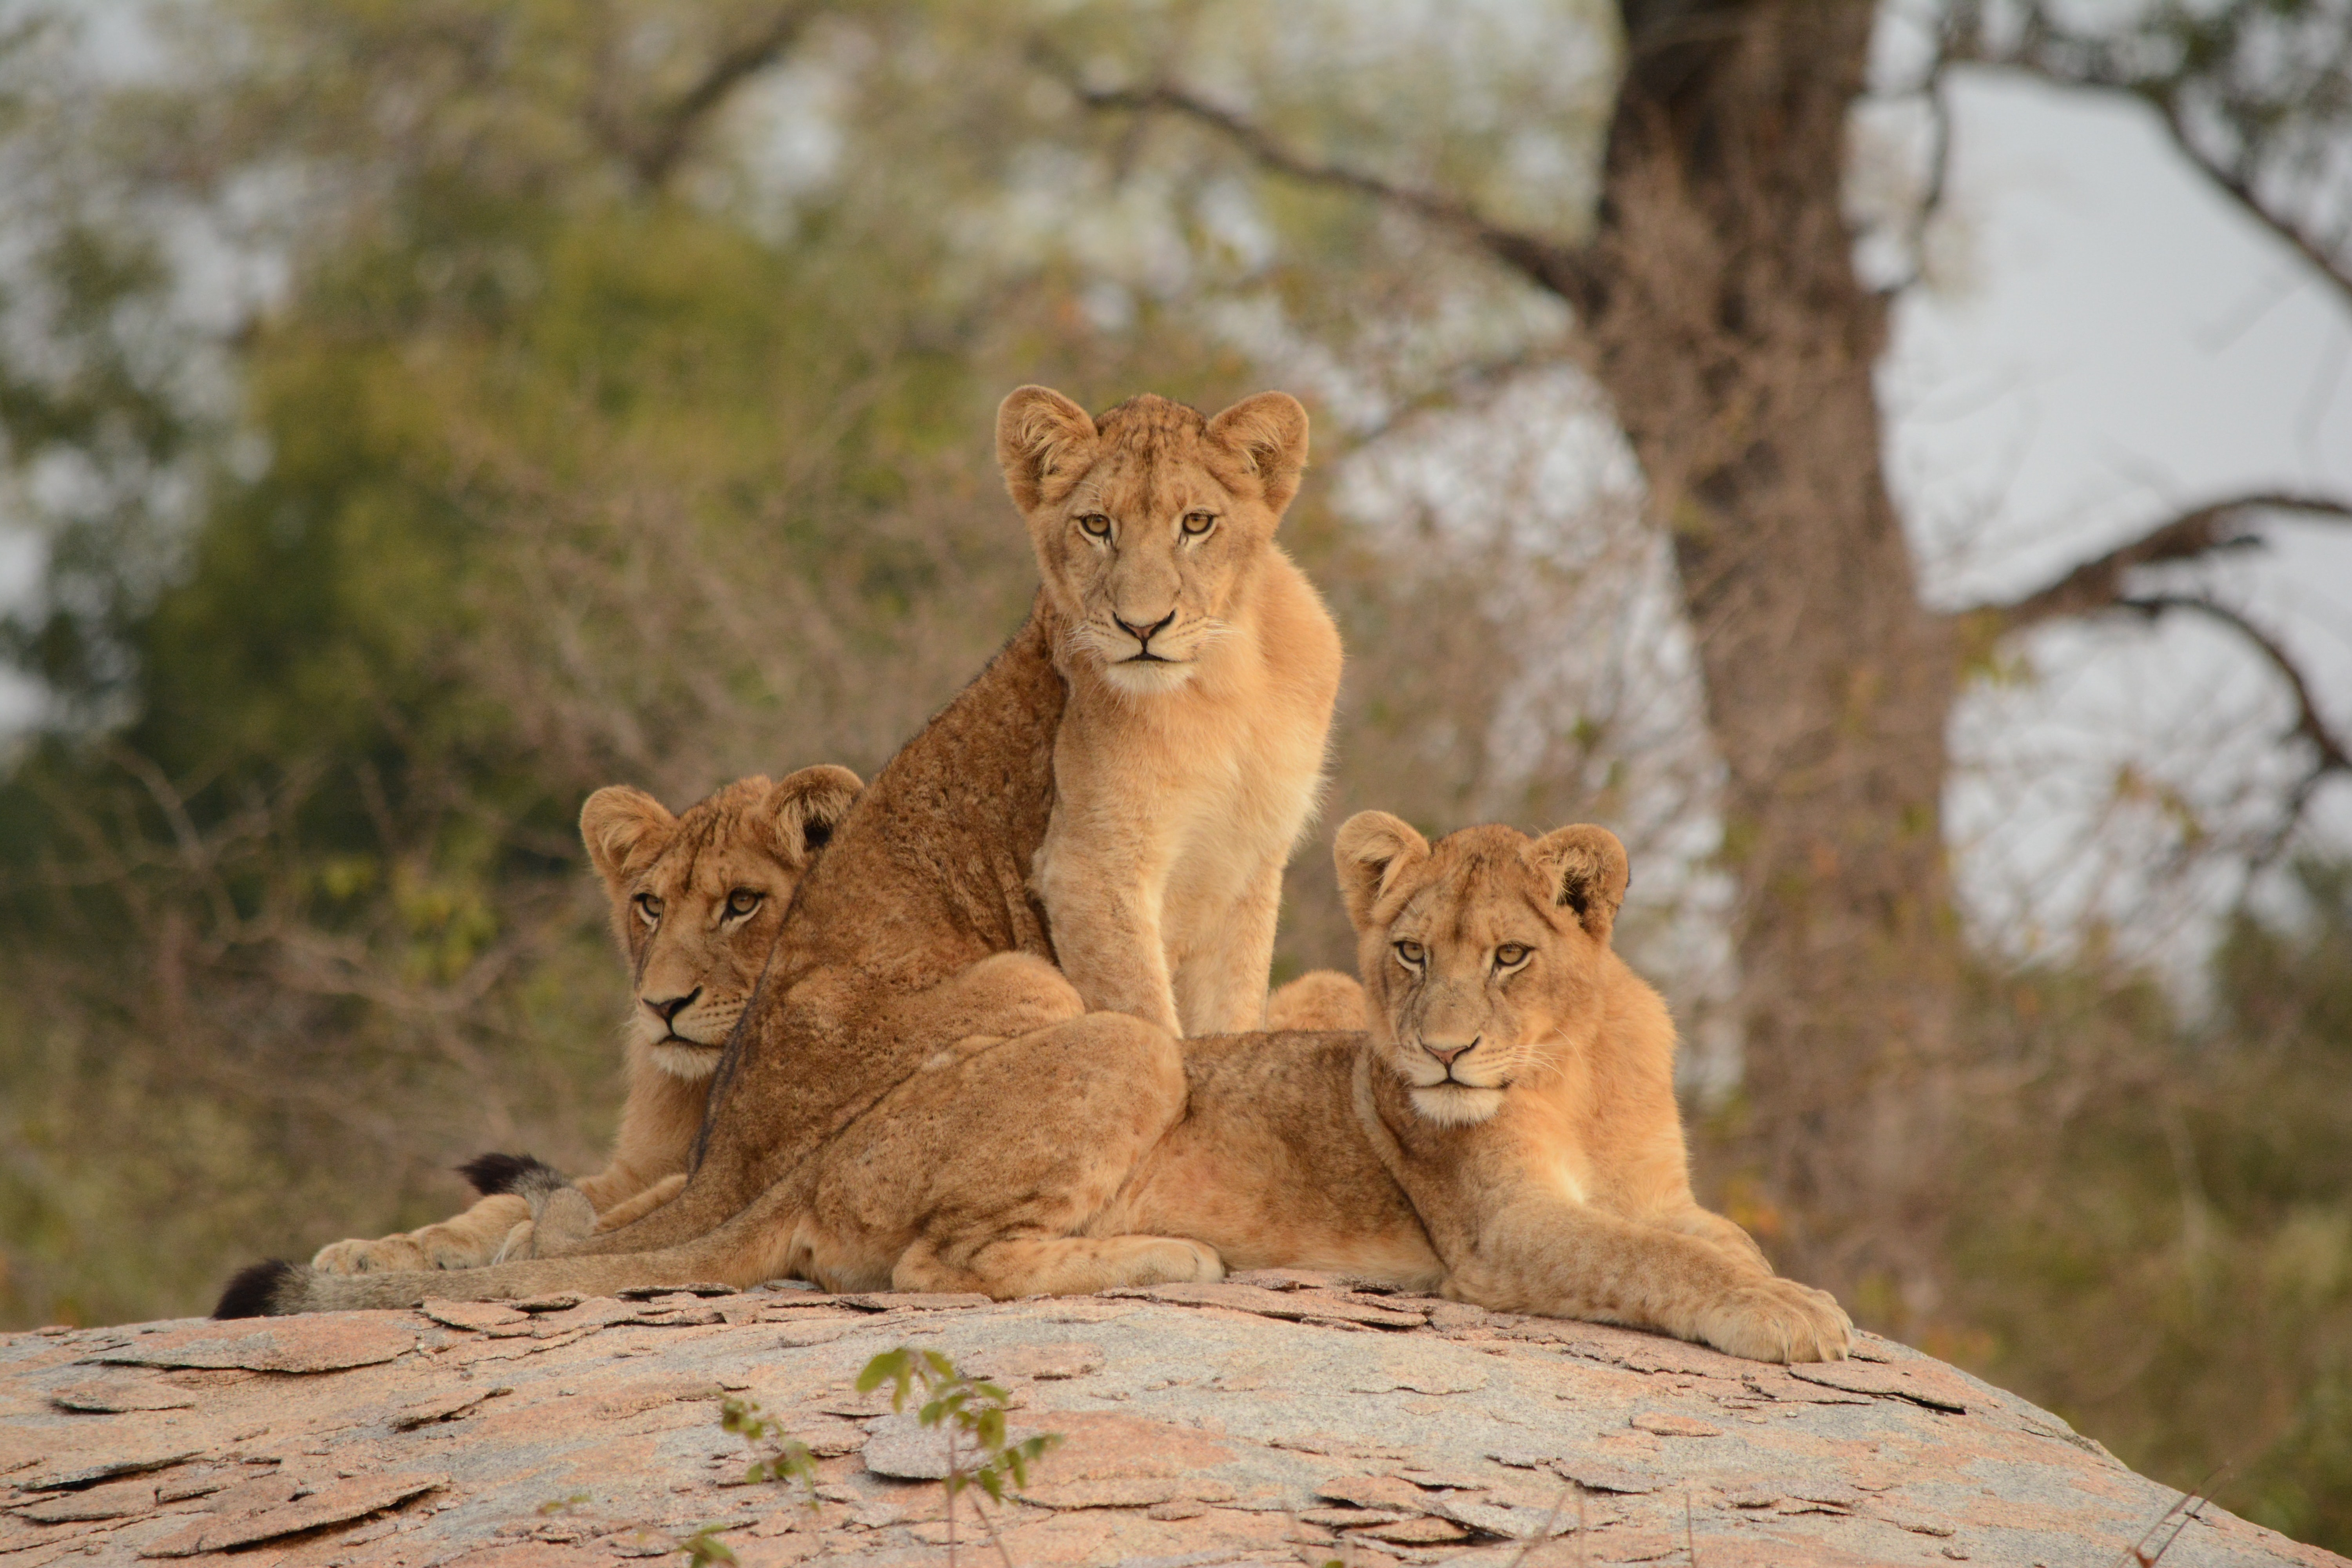 104287 download wallpaper Animals, Lionesses, Lioness, Big Cat, Predator screensavers and pictures for free